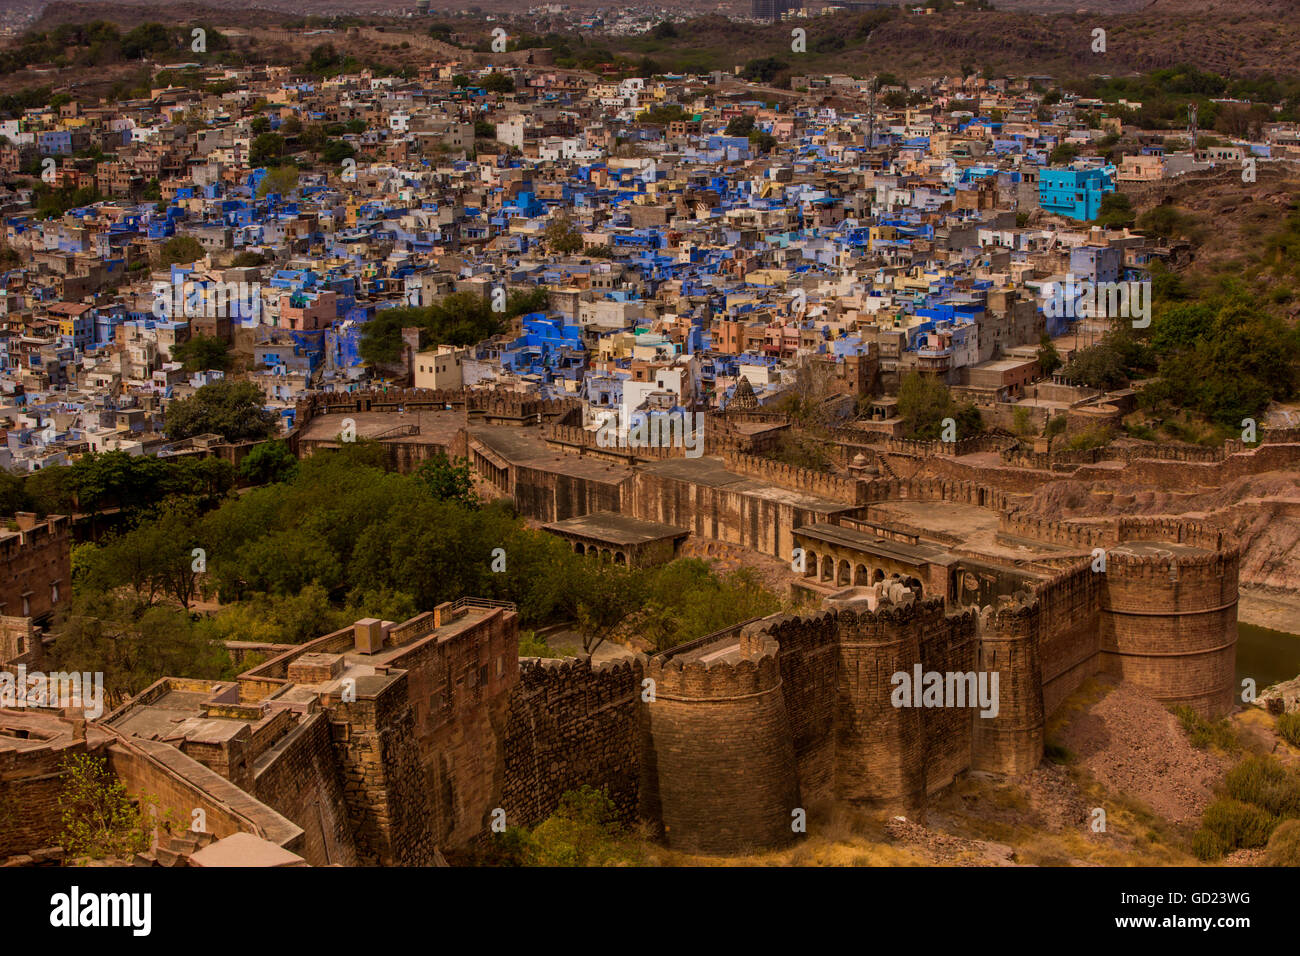 The palace walls of Mehrangarh Fort towering over the blue rooftops in Jodhpur, the Blue City, Rajasthan, India, - Stock Image